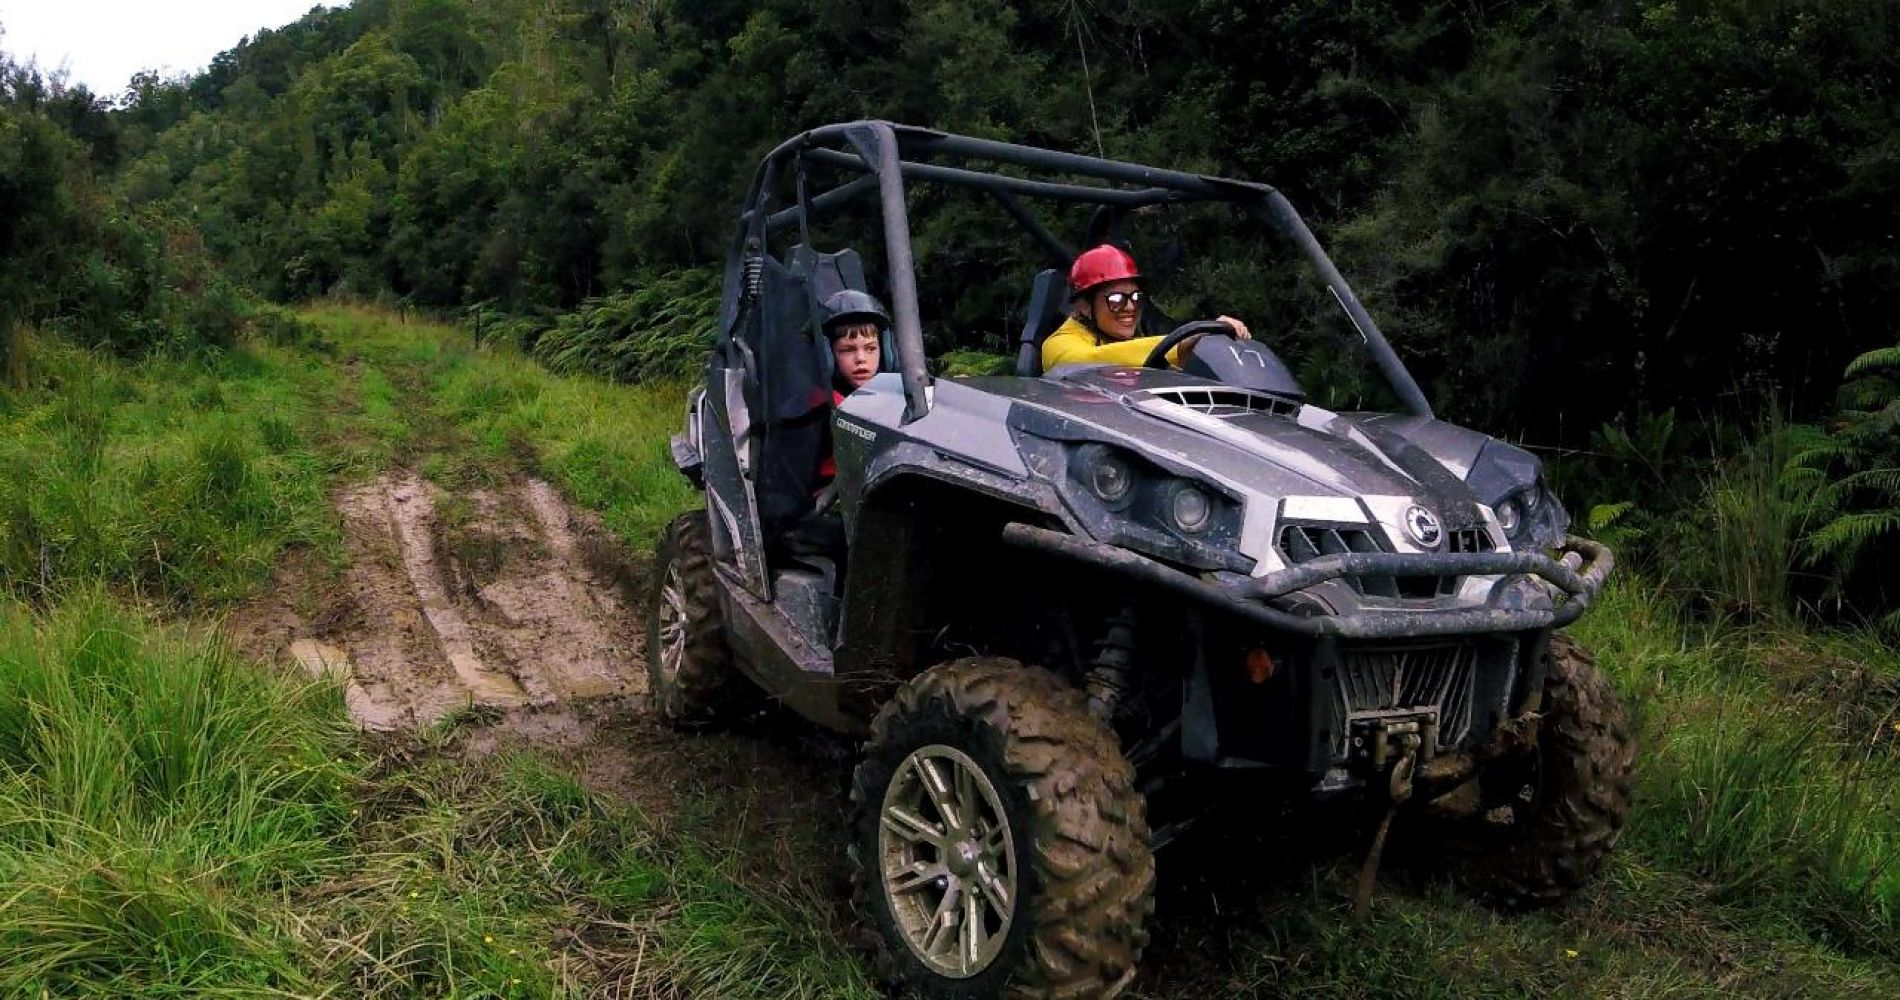 Mud Track Buggy Adventure for Three in New Zealand